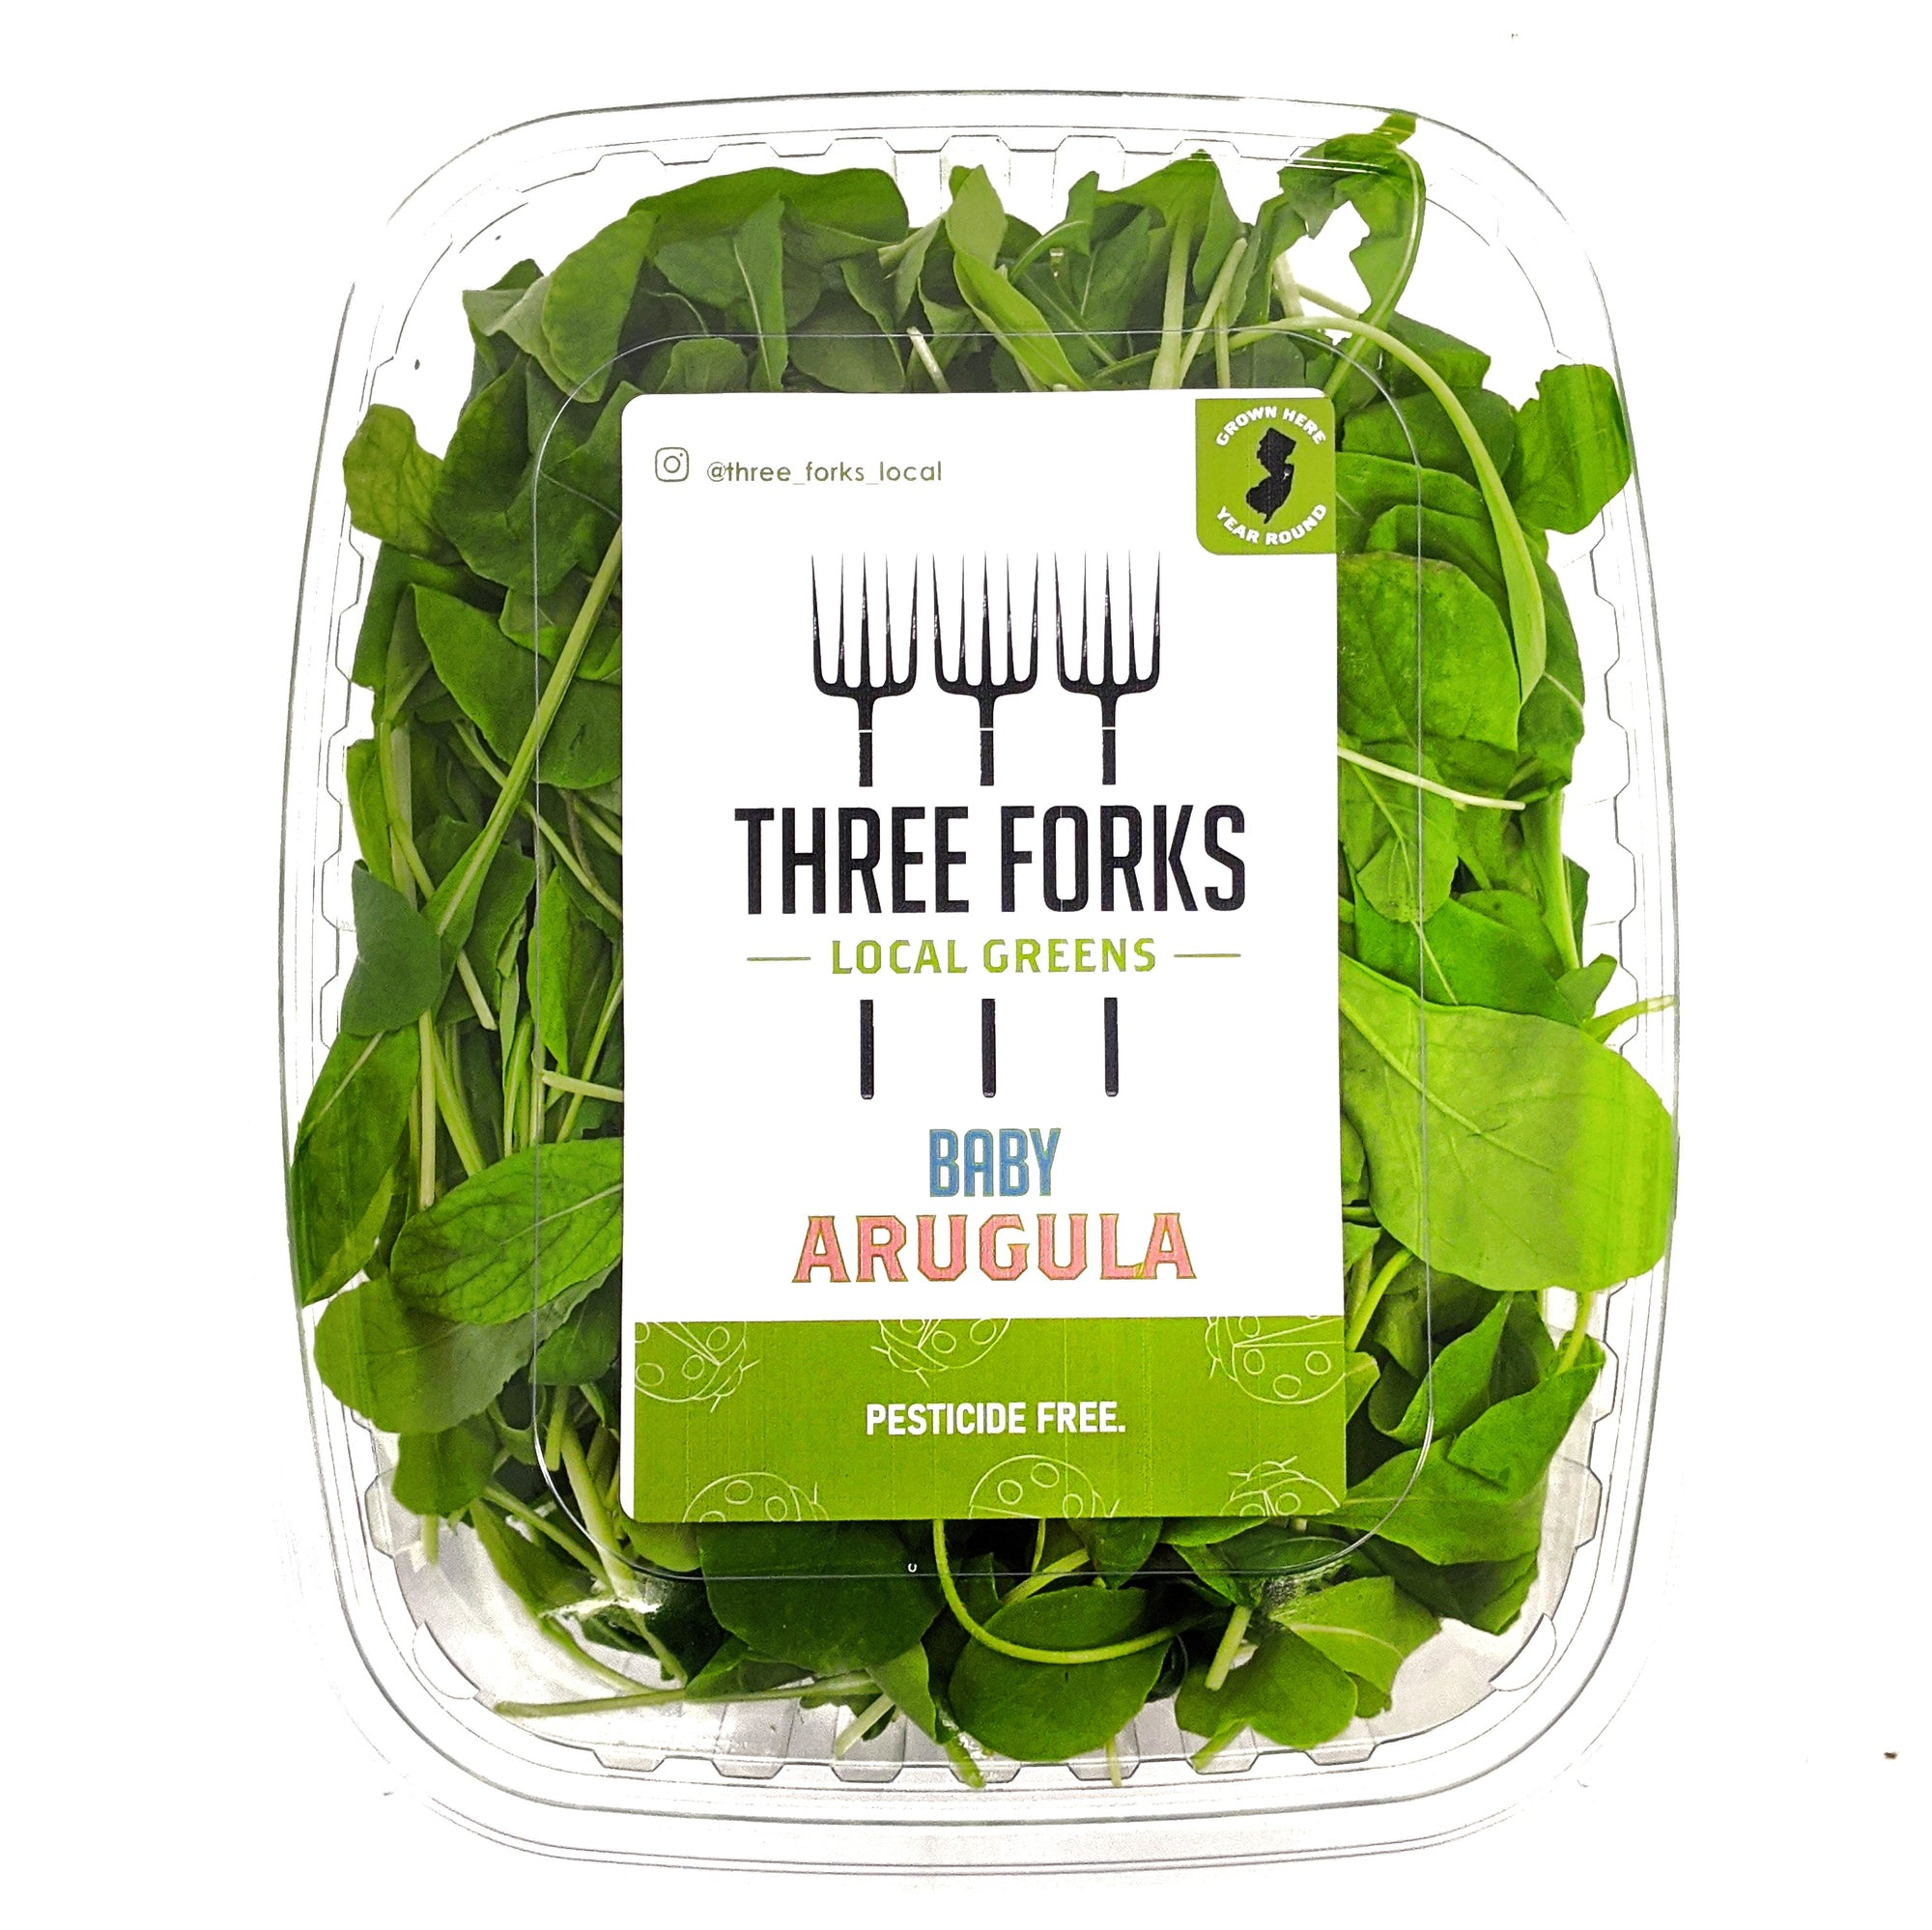 Three Forks Local Greens Baby Arugula